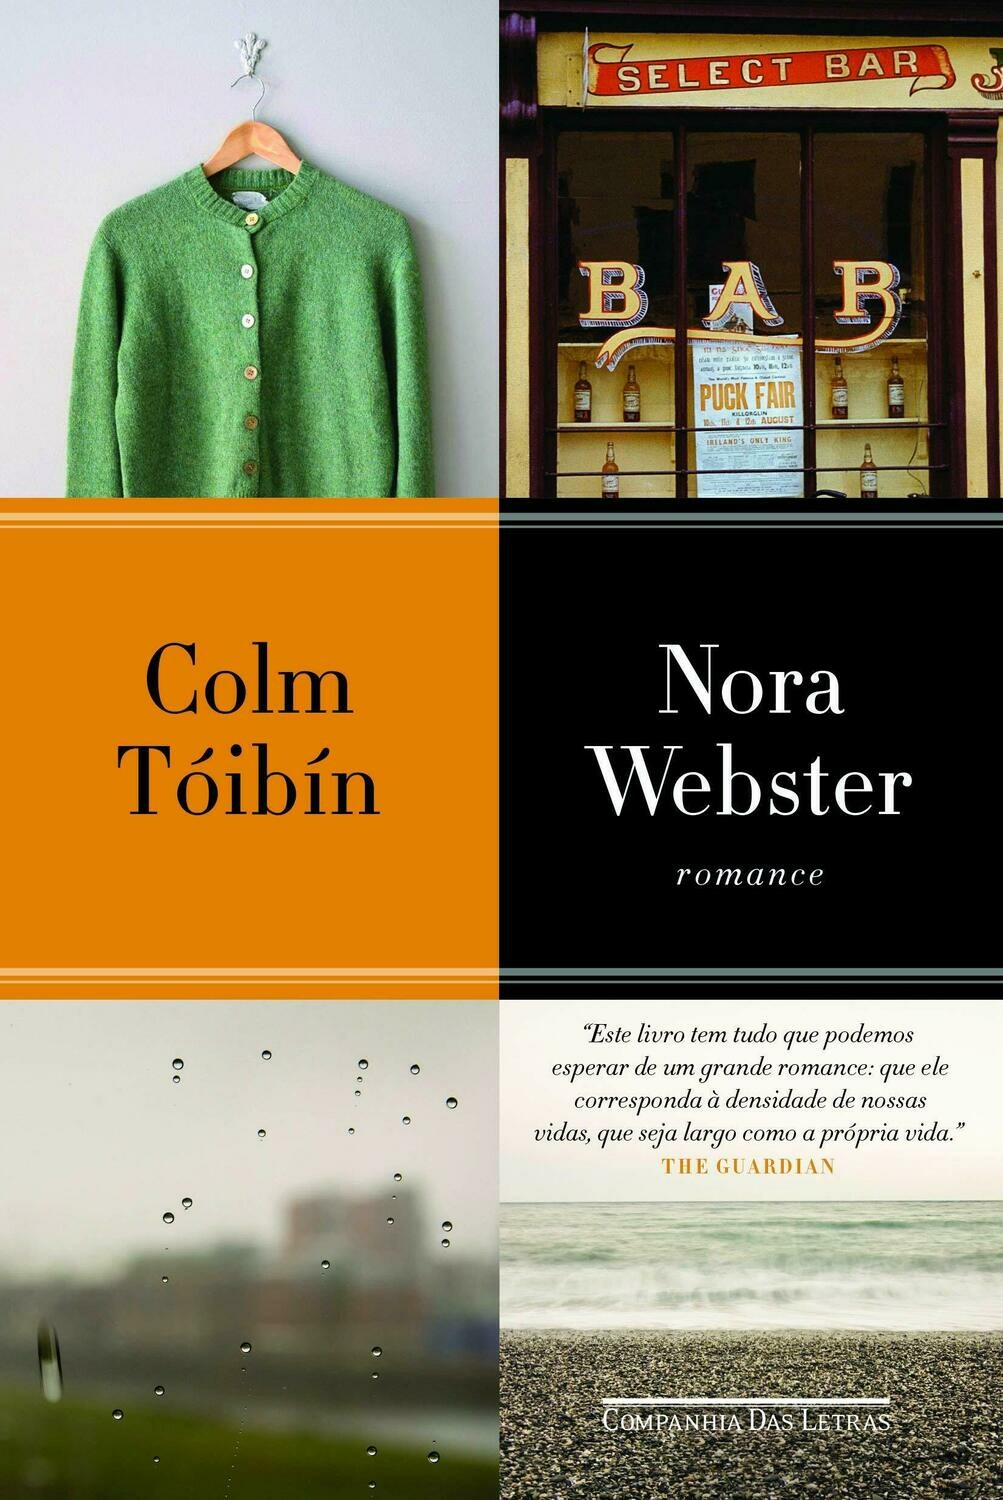 NORA WEBSTER de Colm Toibin